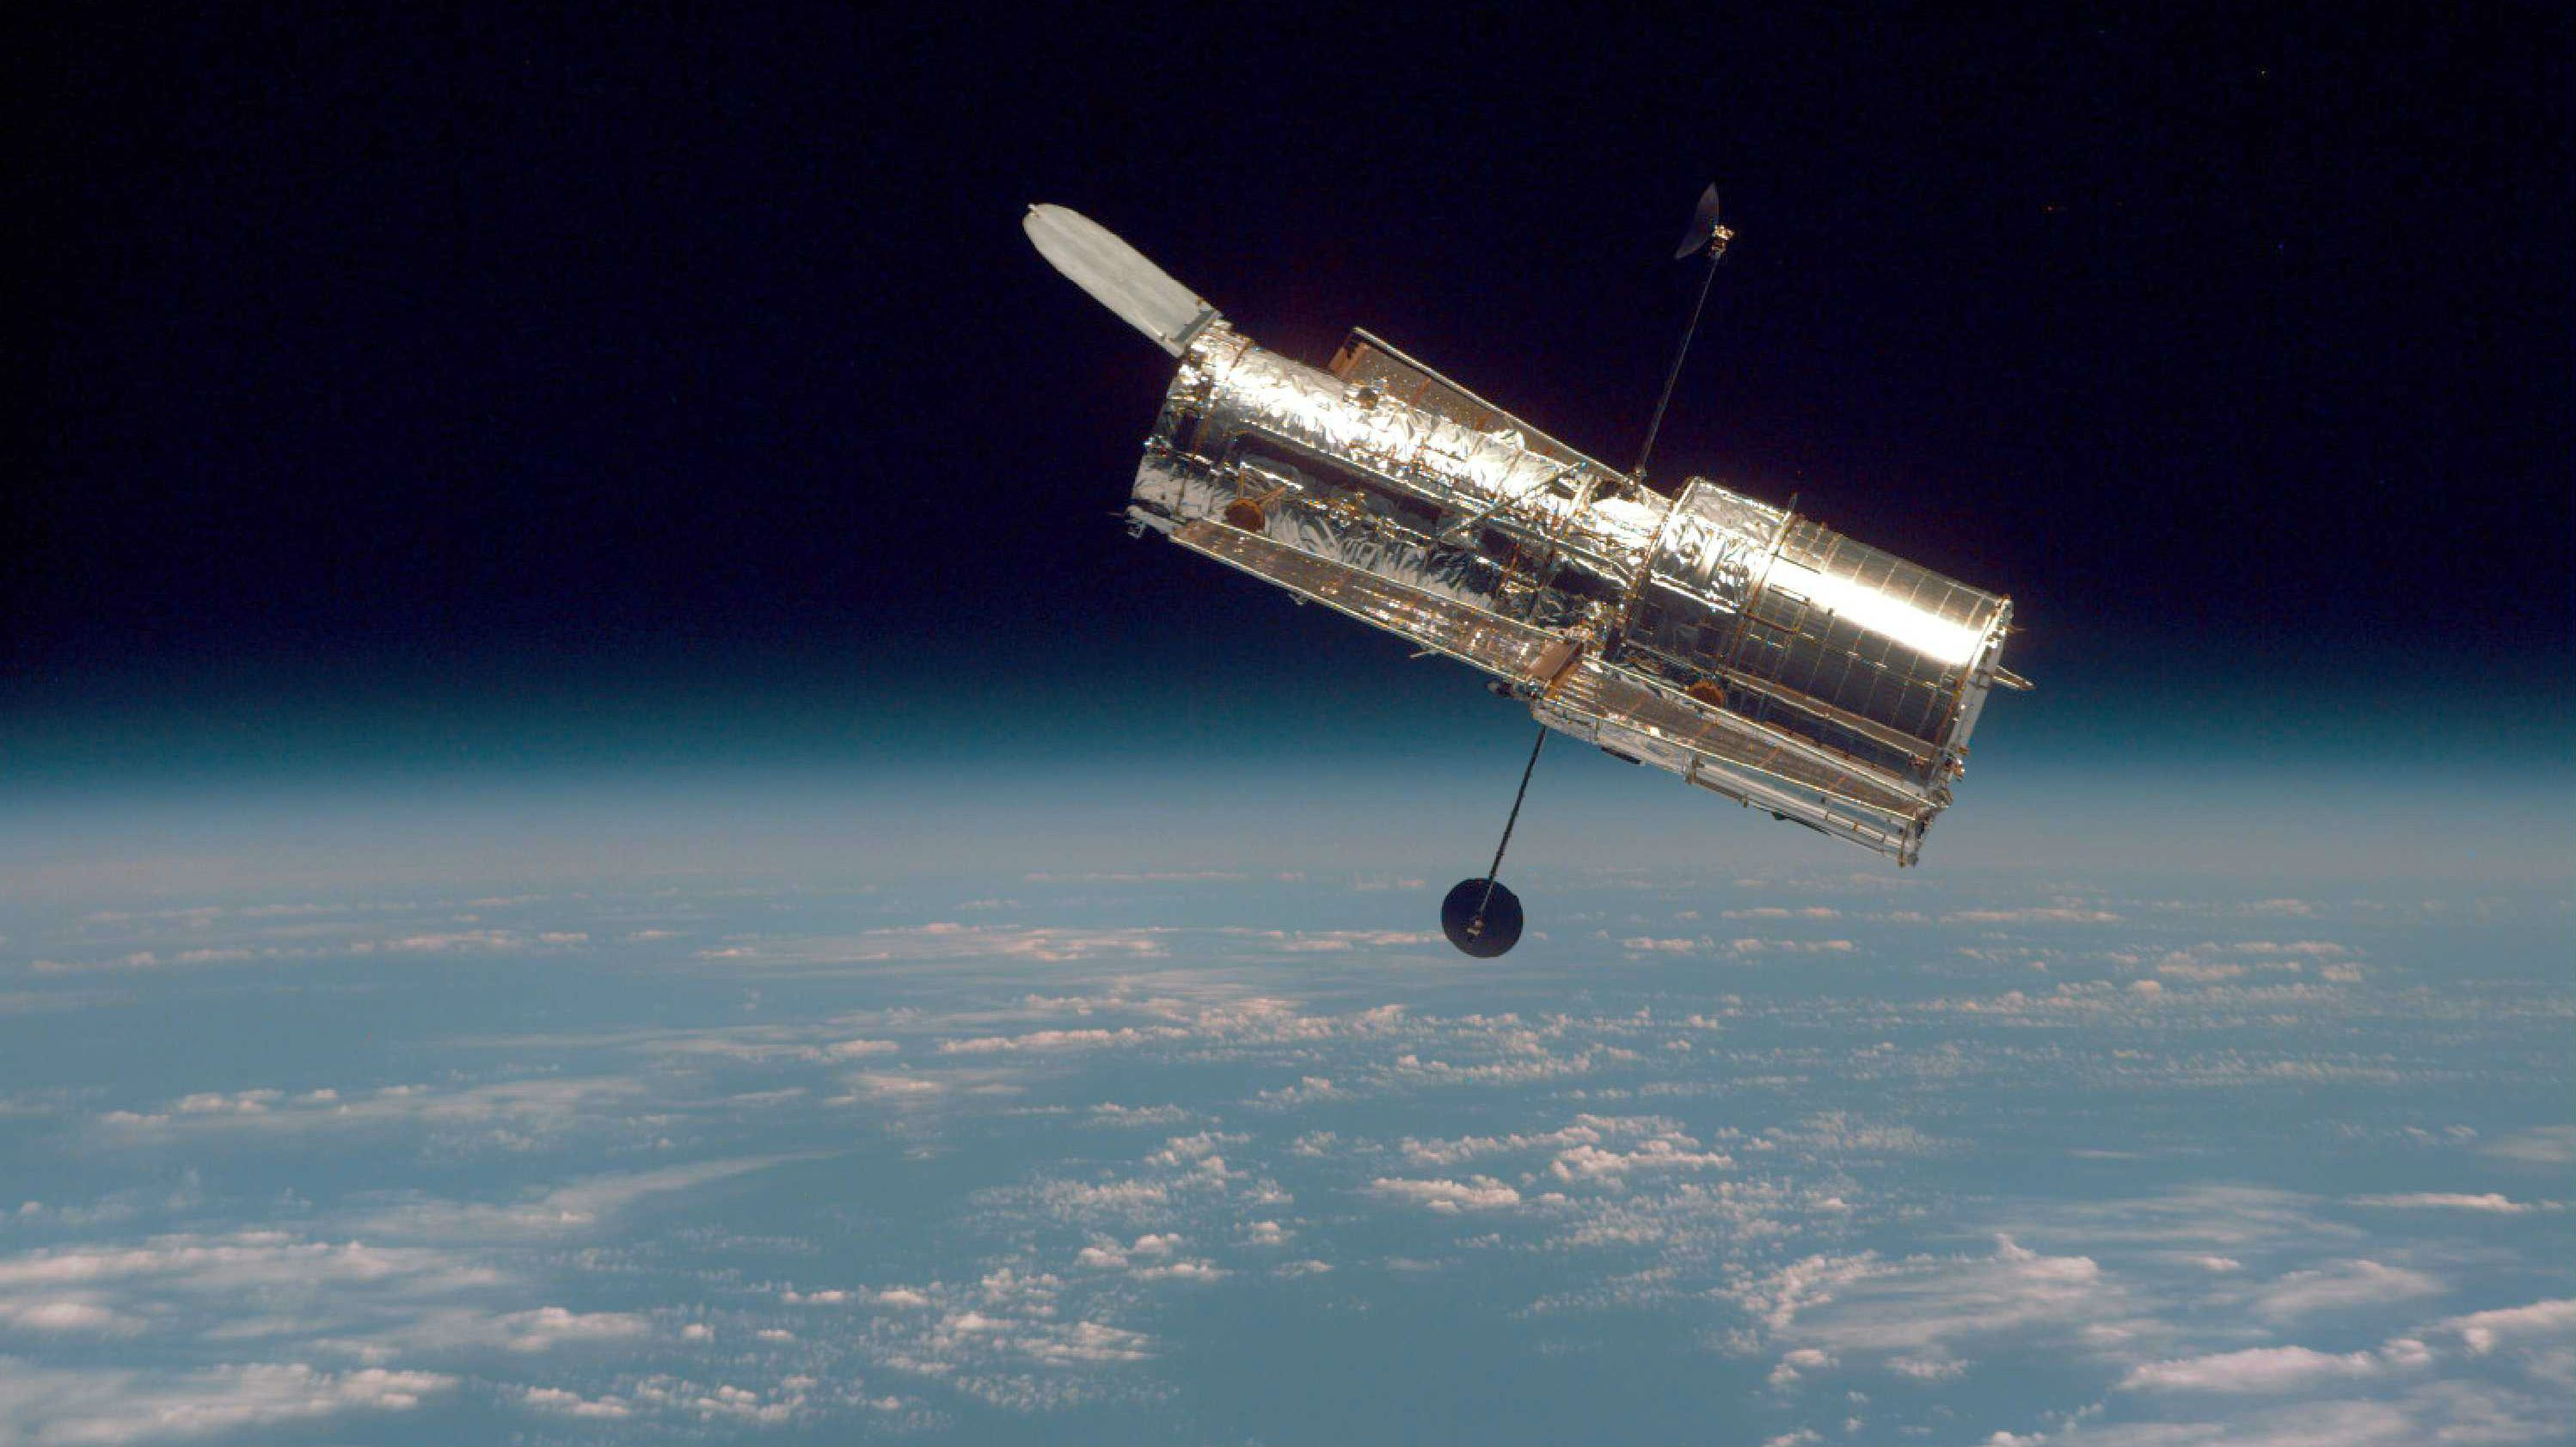 Hubble and Earth